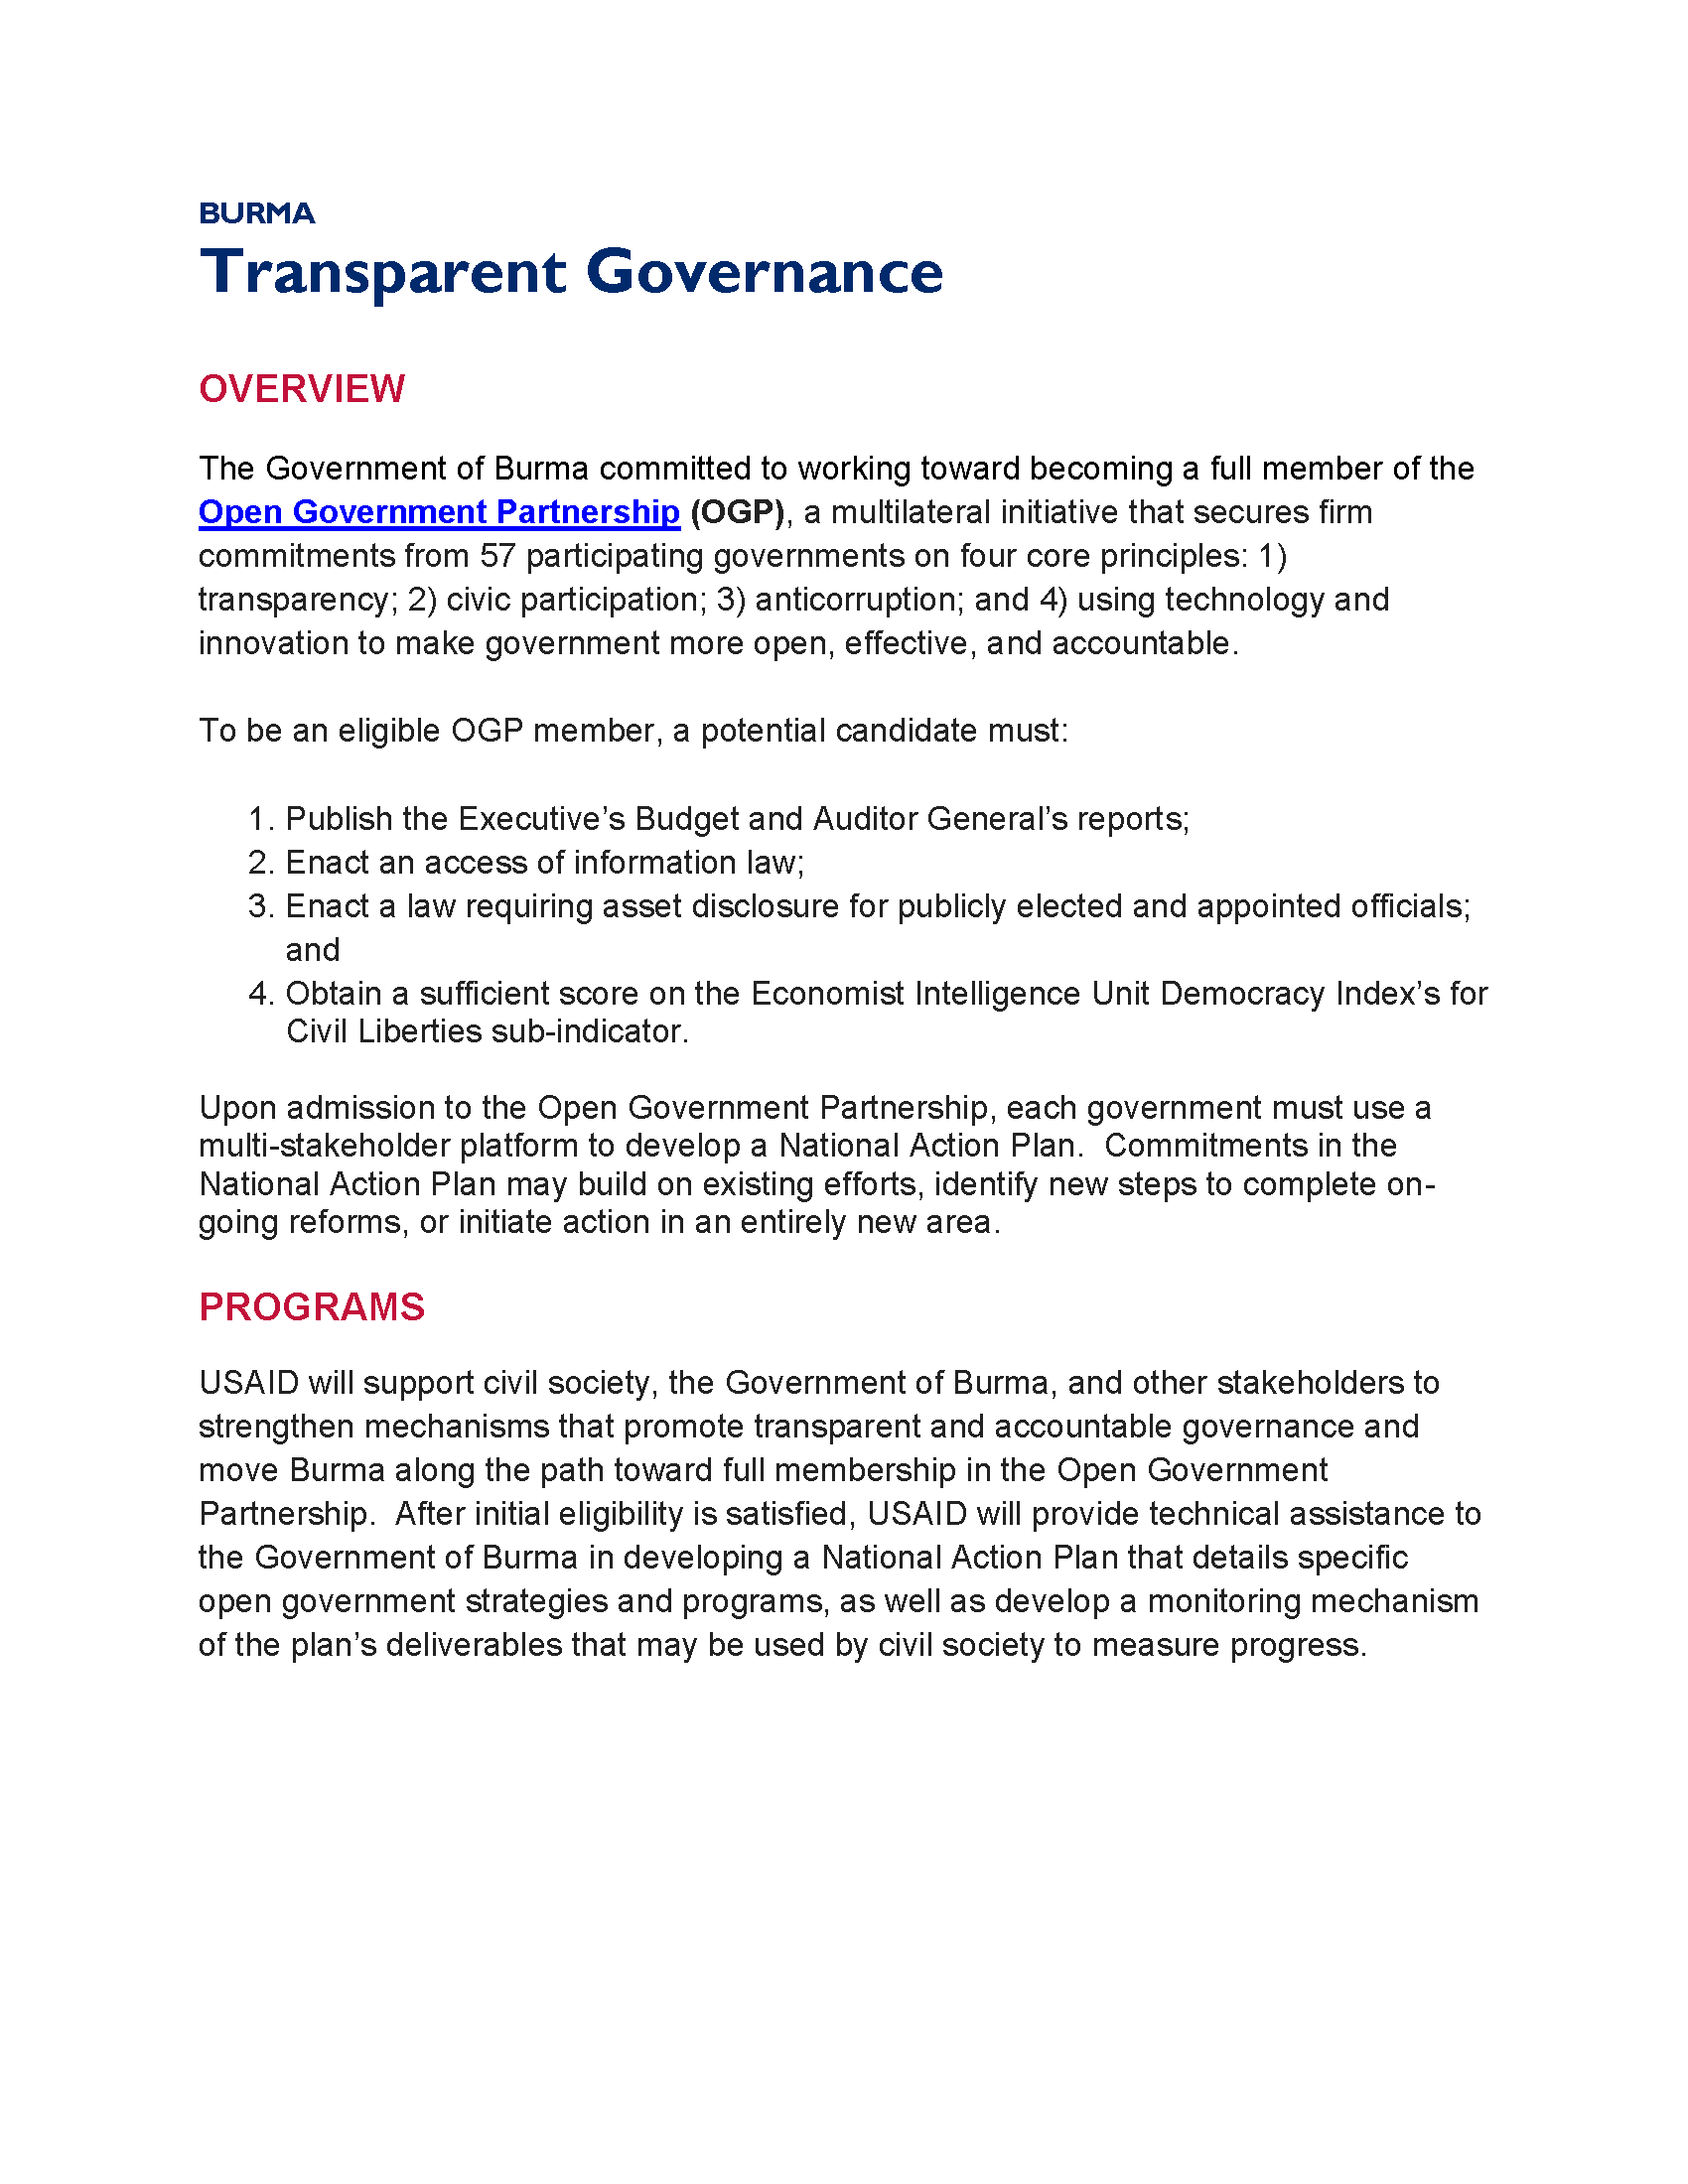 Burma Transparent Governance Fact Sheet